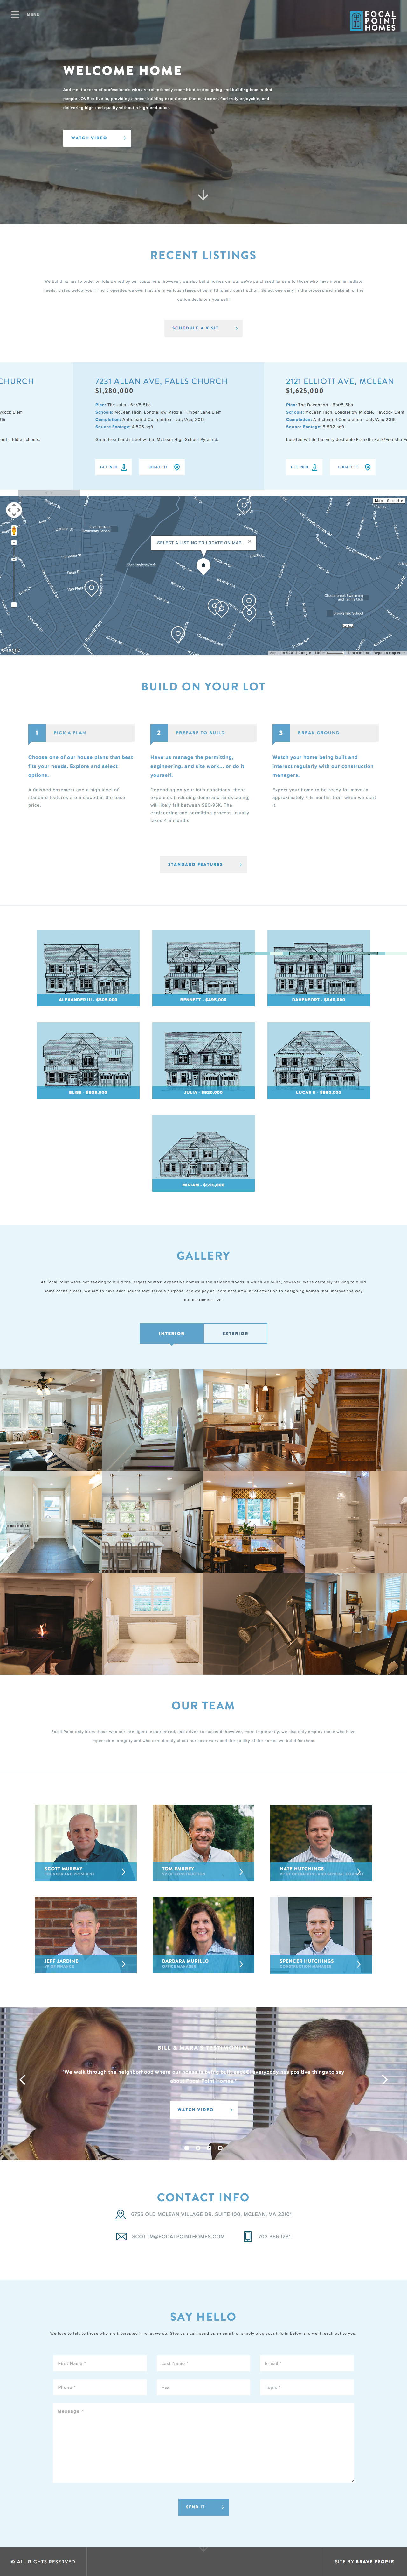 Focal Point Homes Website Screenshot